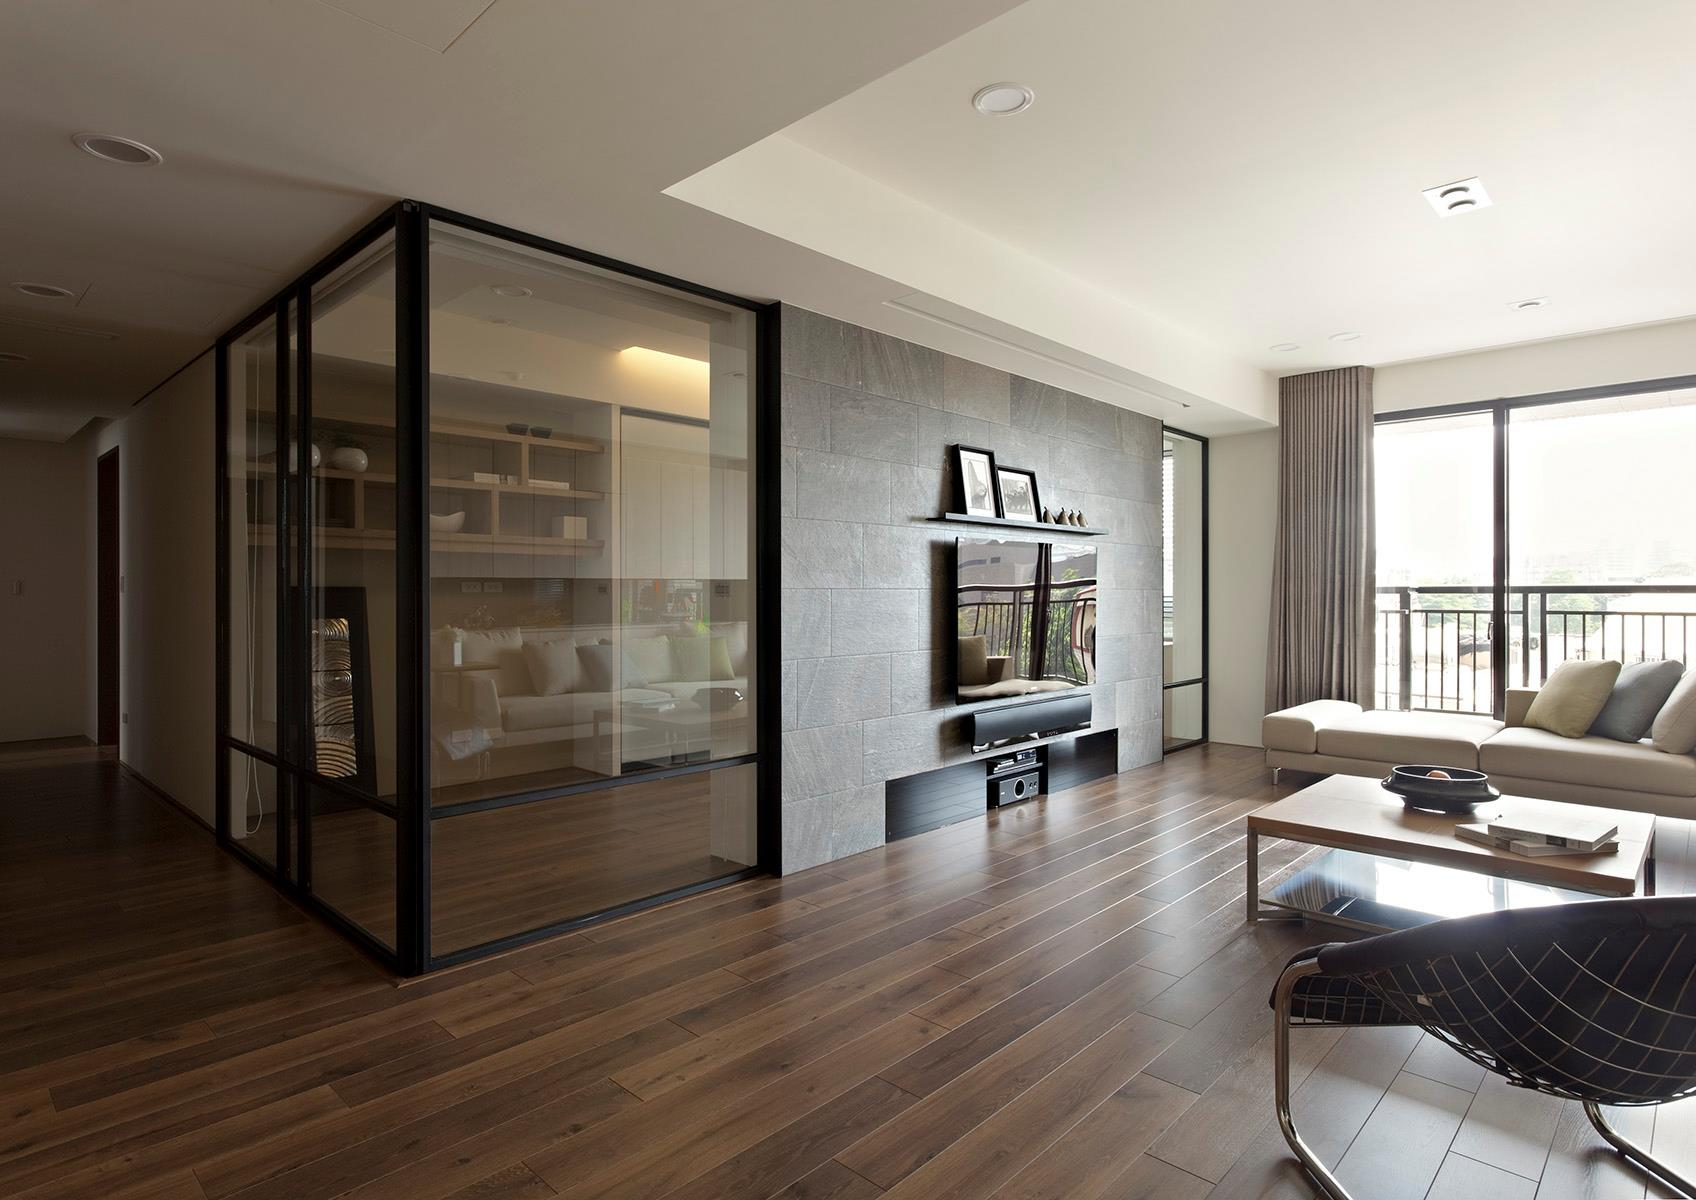 Apartment Retractable Wall by Fertility Design (7)